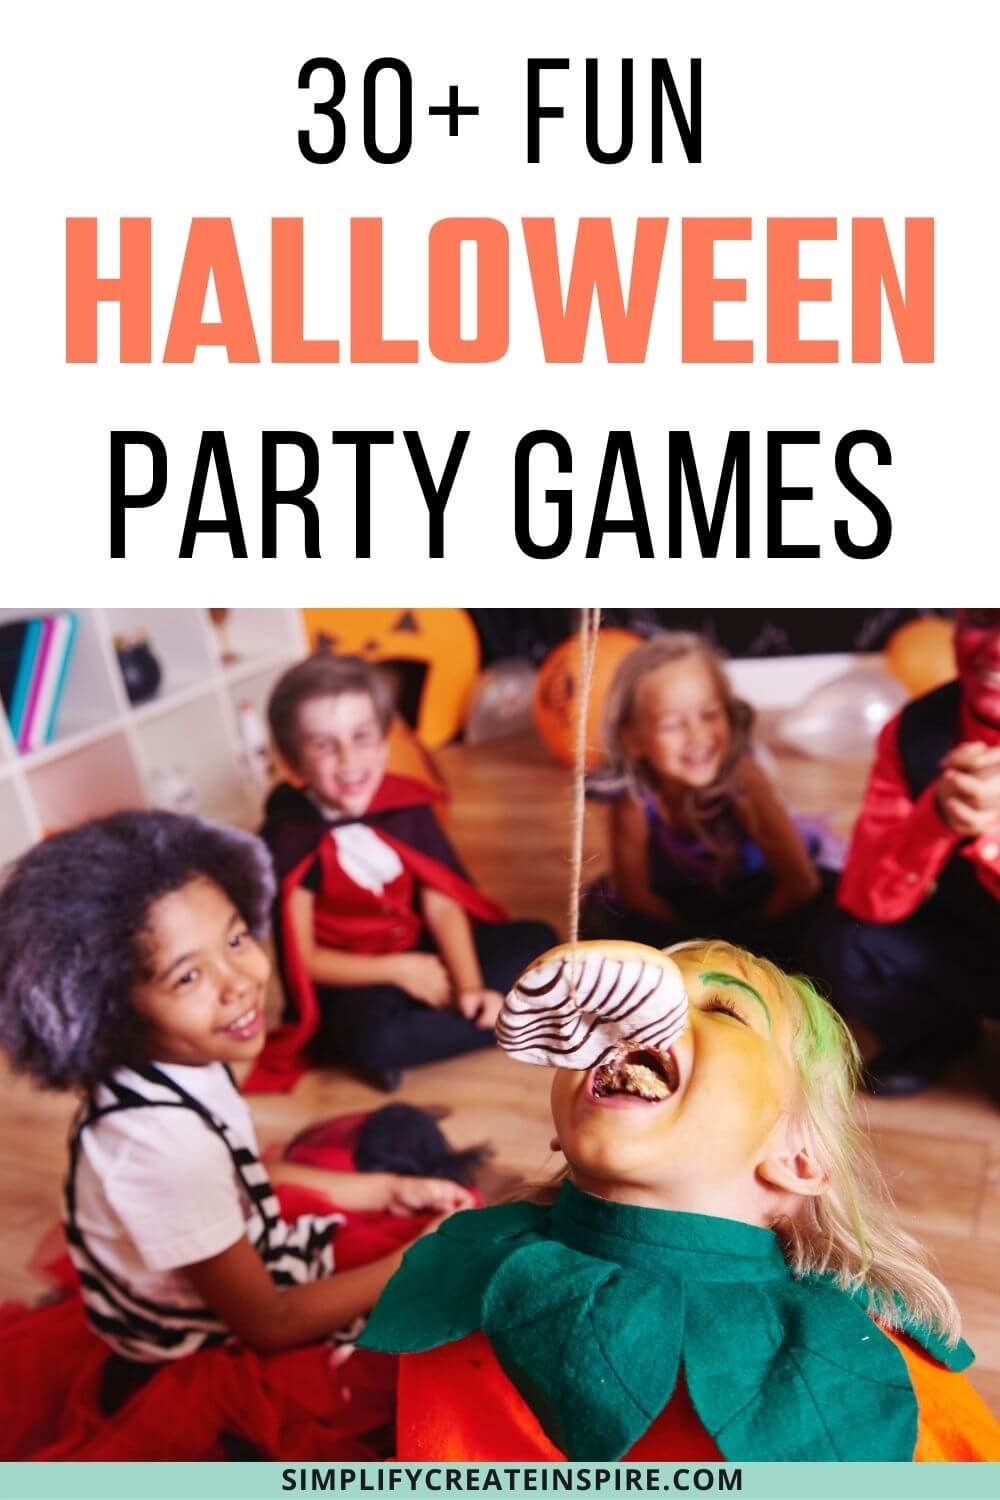 Fun halloween party games for all ages